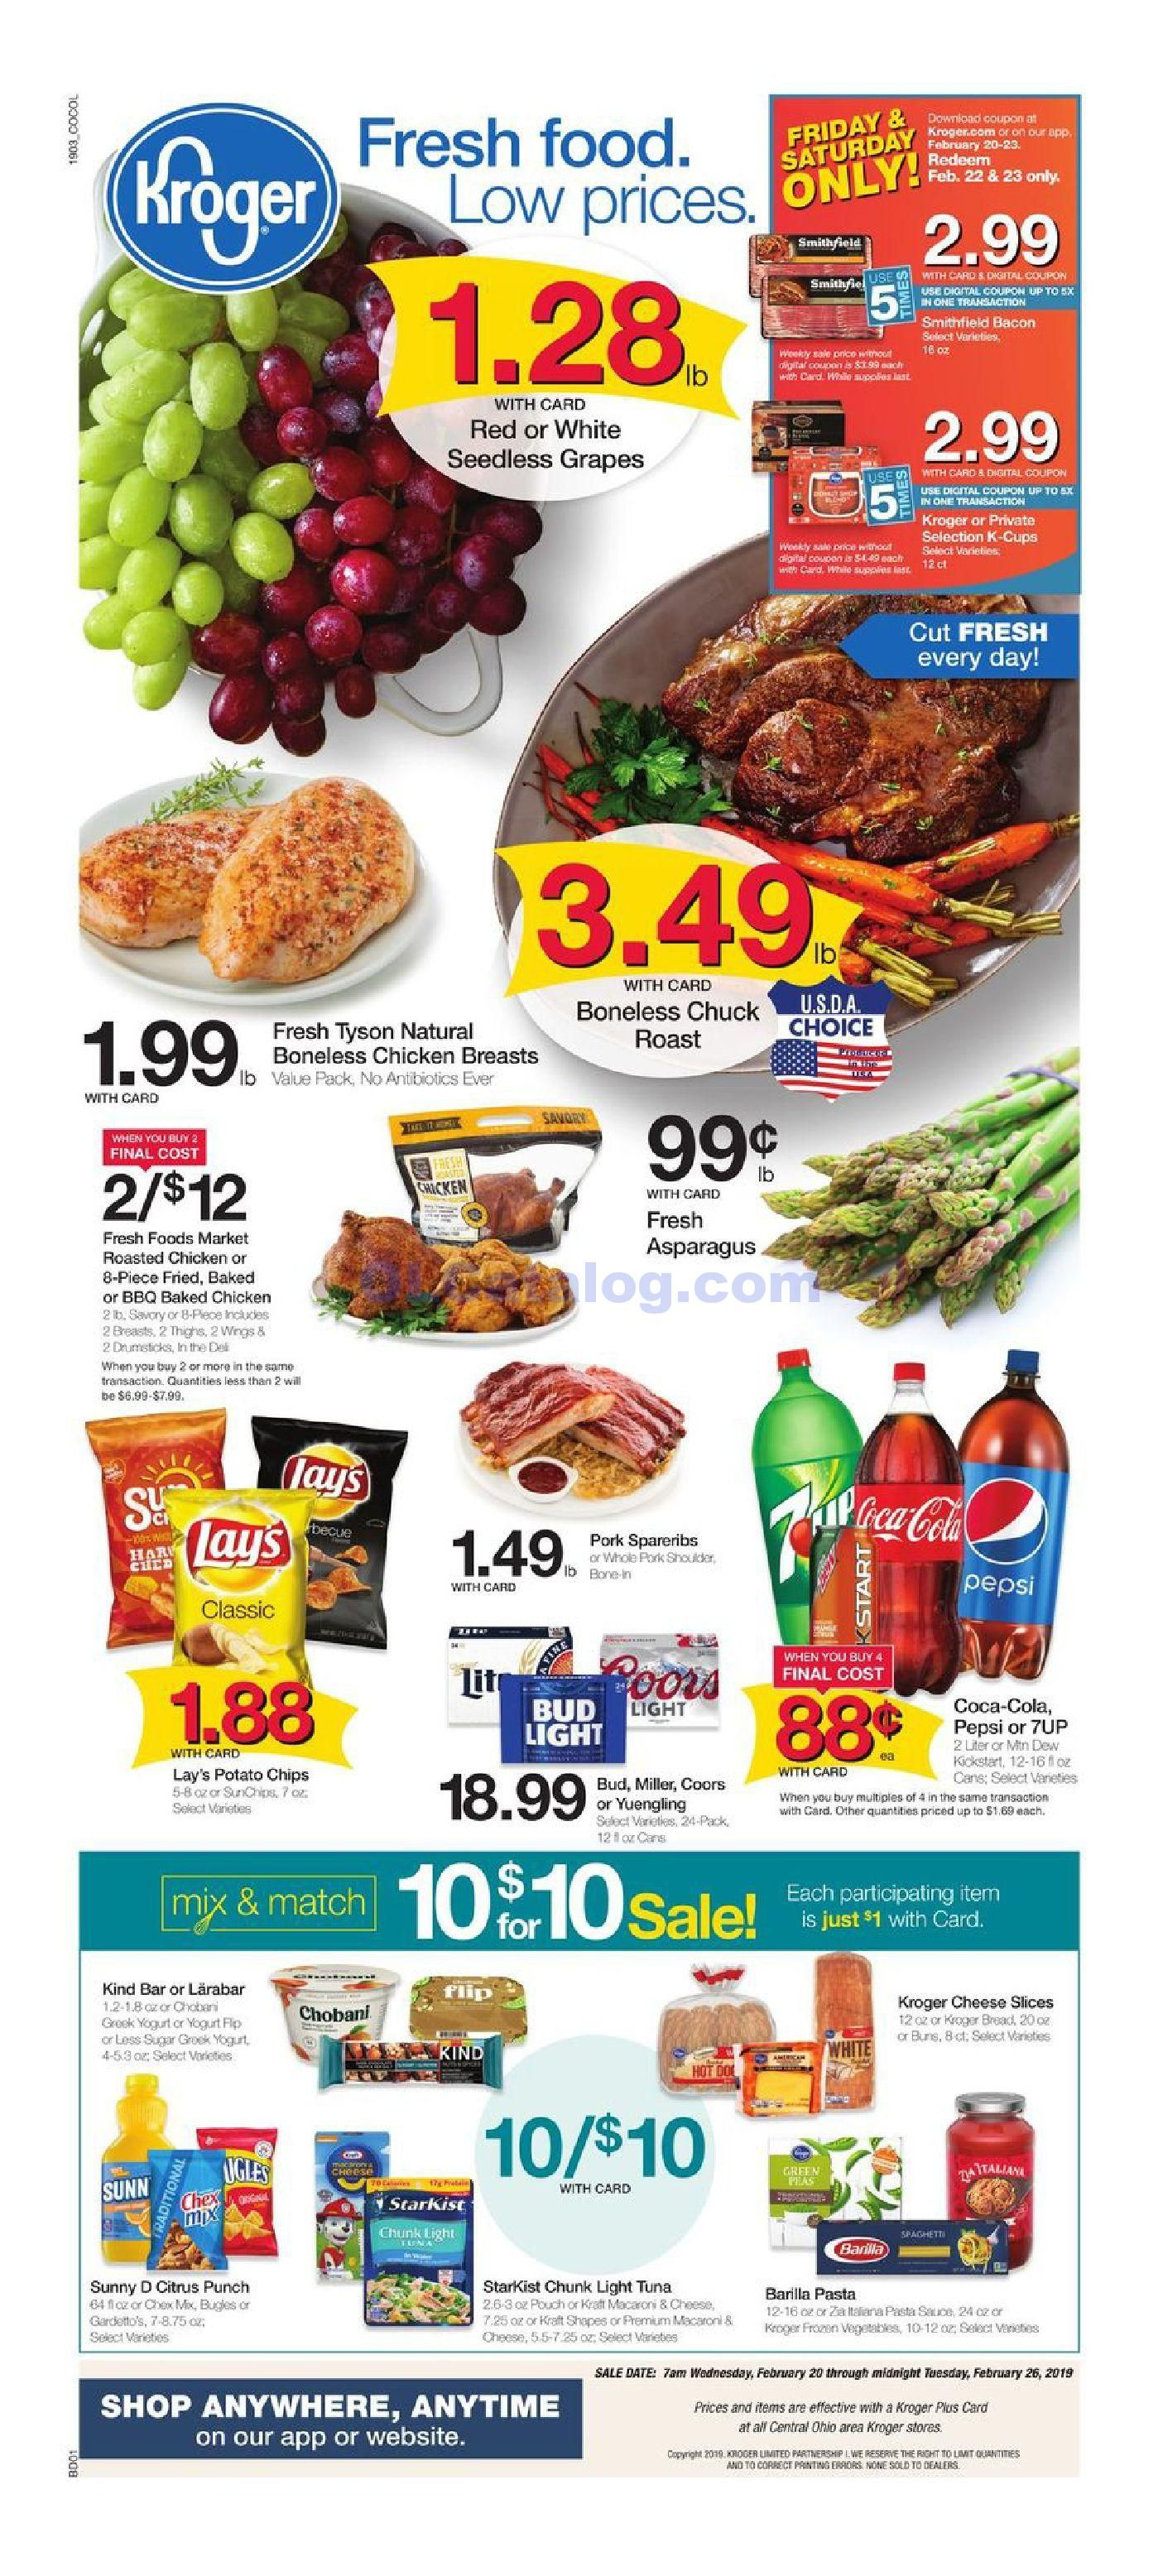 Kroger Weekly Ad February 20 – 26, 2019  Check Latest Kroger